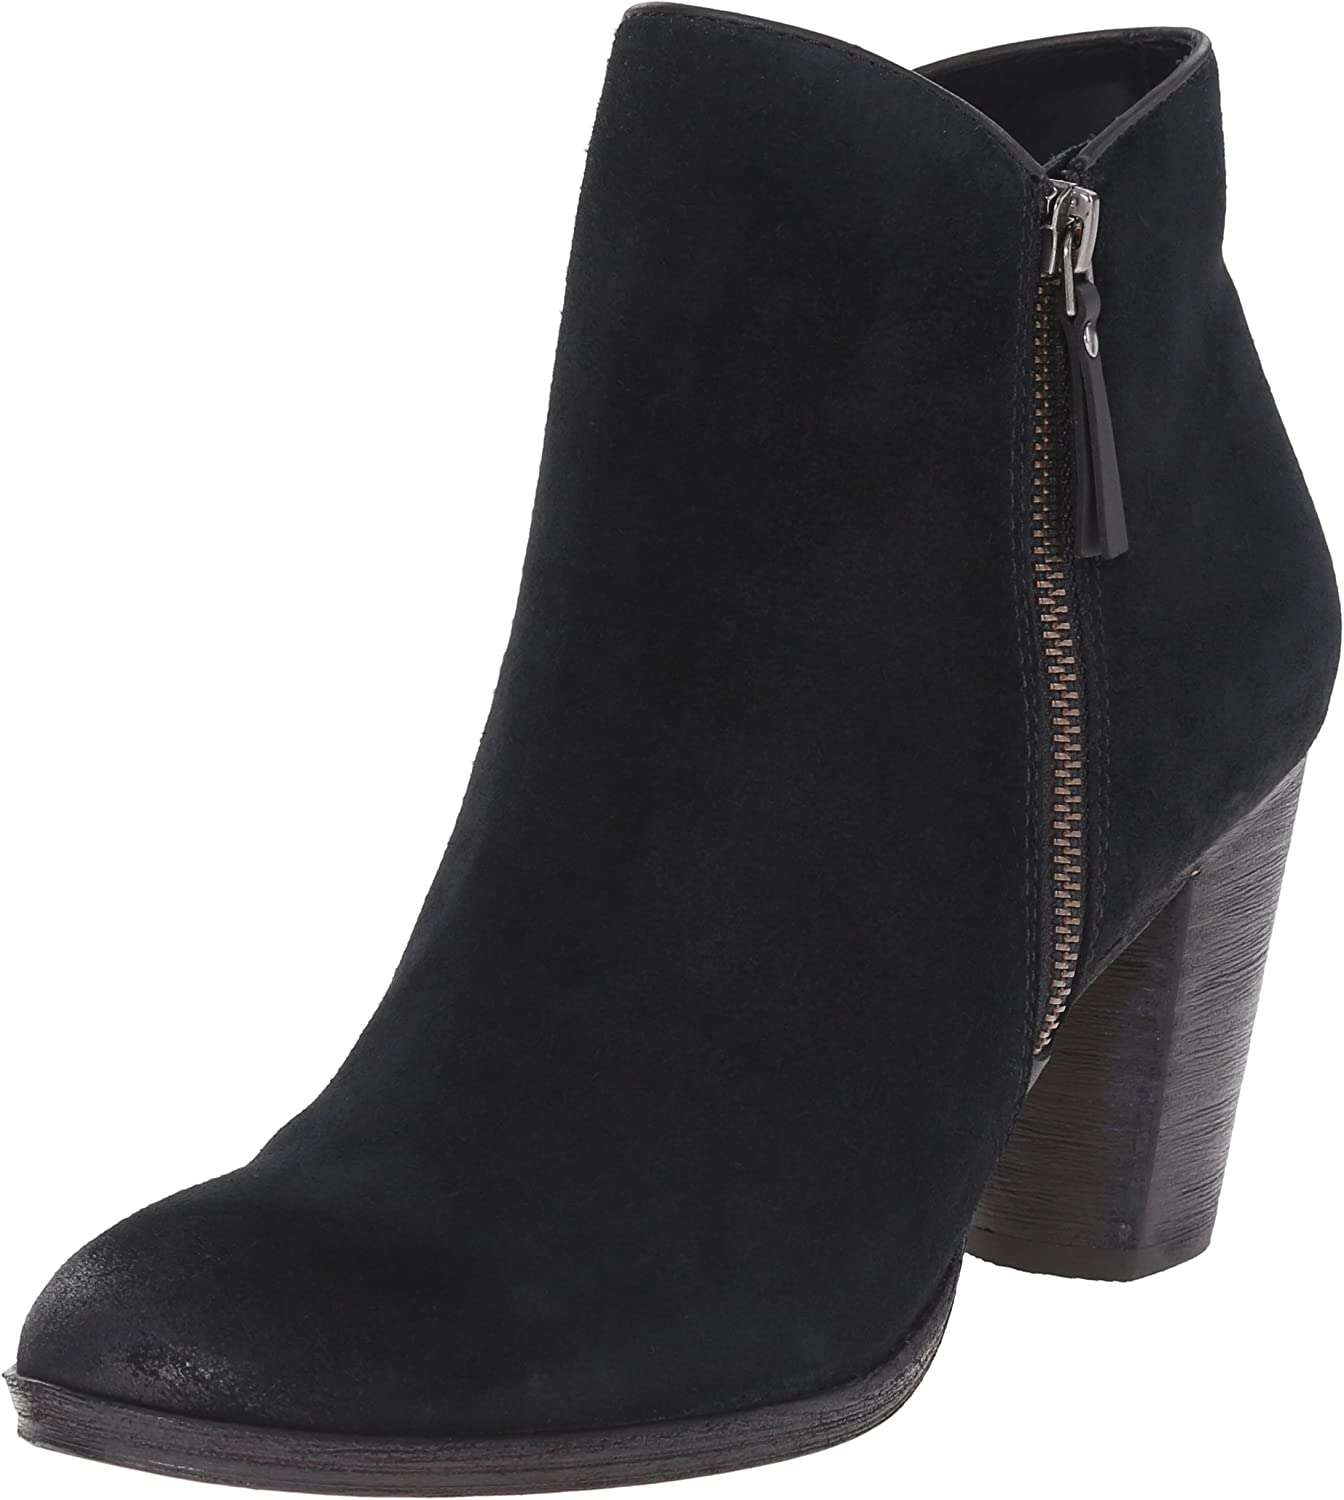 Cole Haan Women's Hayes Bootie Ankle Boots